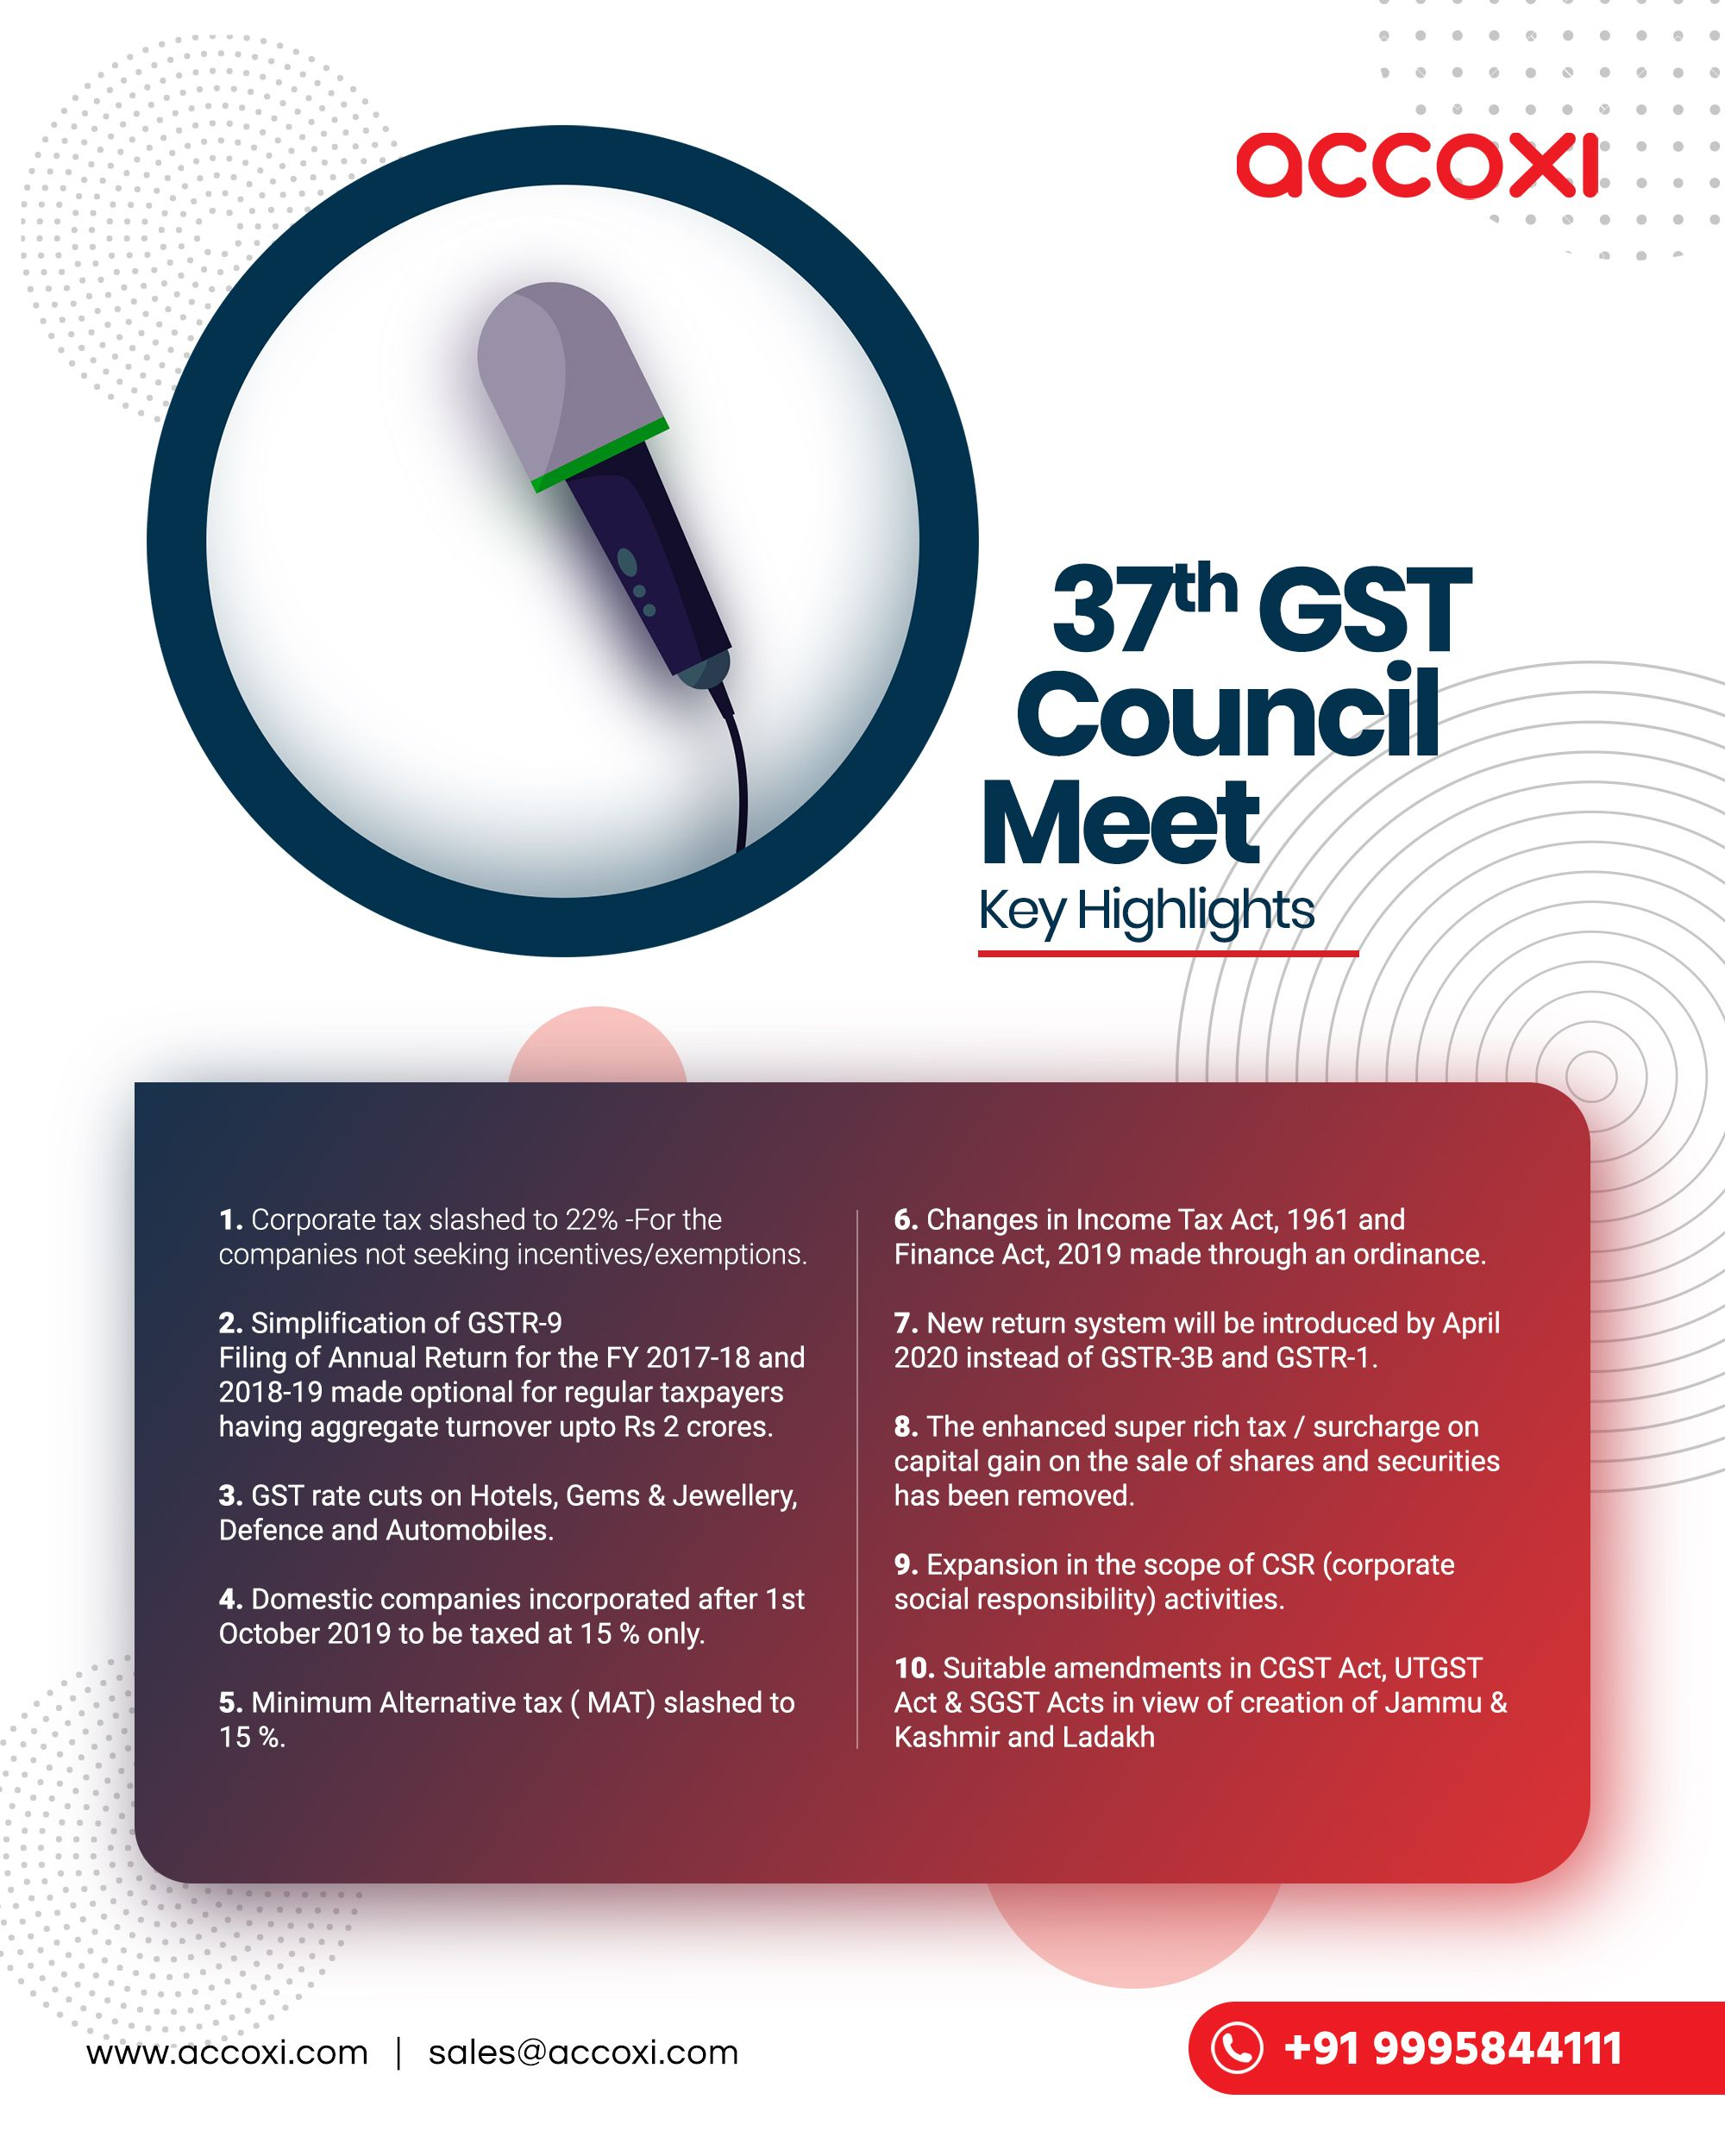 37th Gst Council Meeting Key Highlights Accounting Business Tax Accountant Finance Bookkeeping Smallbusiness Taxes Tax Consulting Council Tax Season